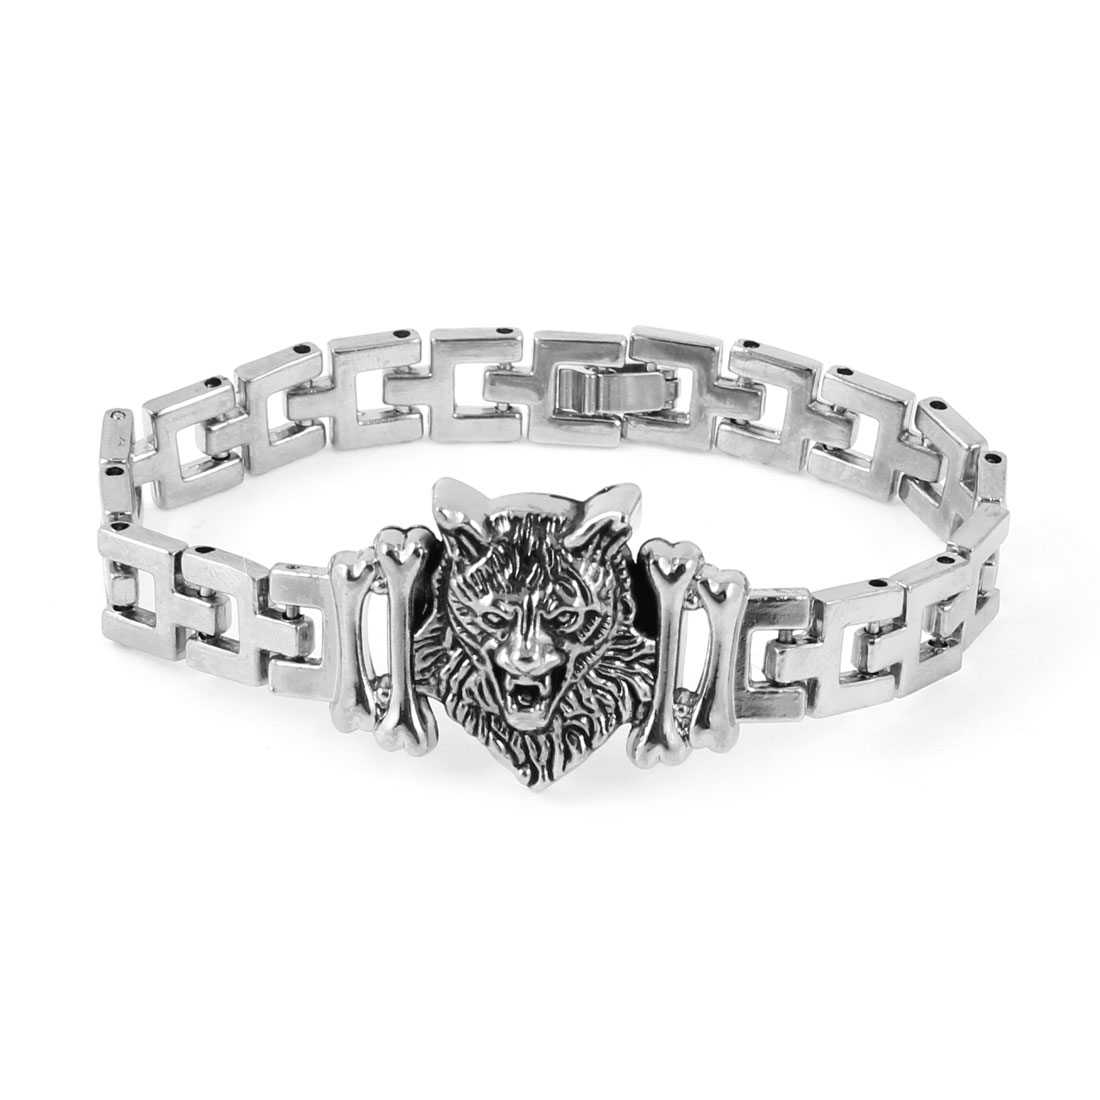 Men Silver Tone Metal Lion Head Design Decor Wrist Chain Bracelet